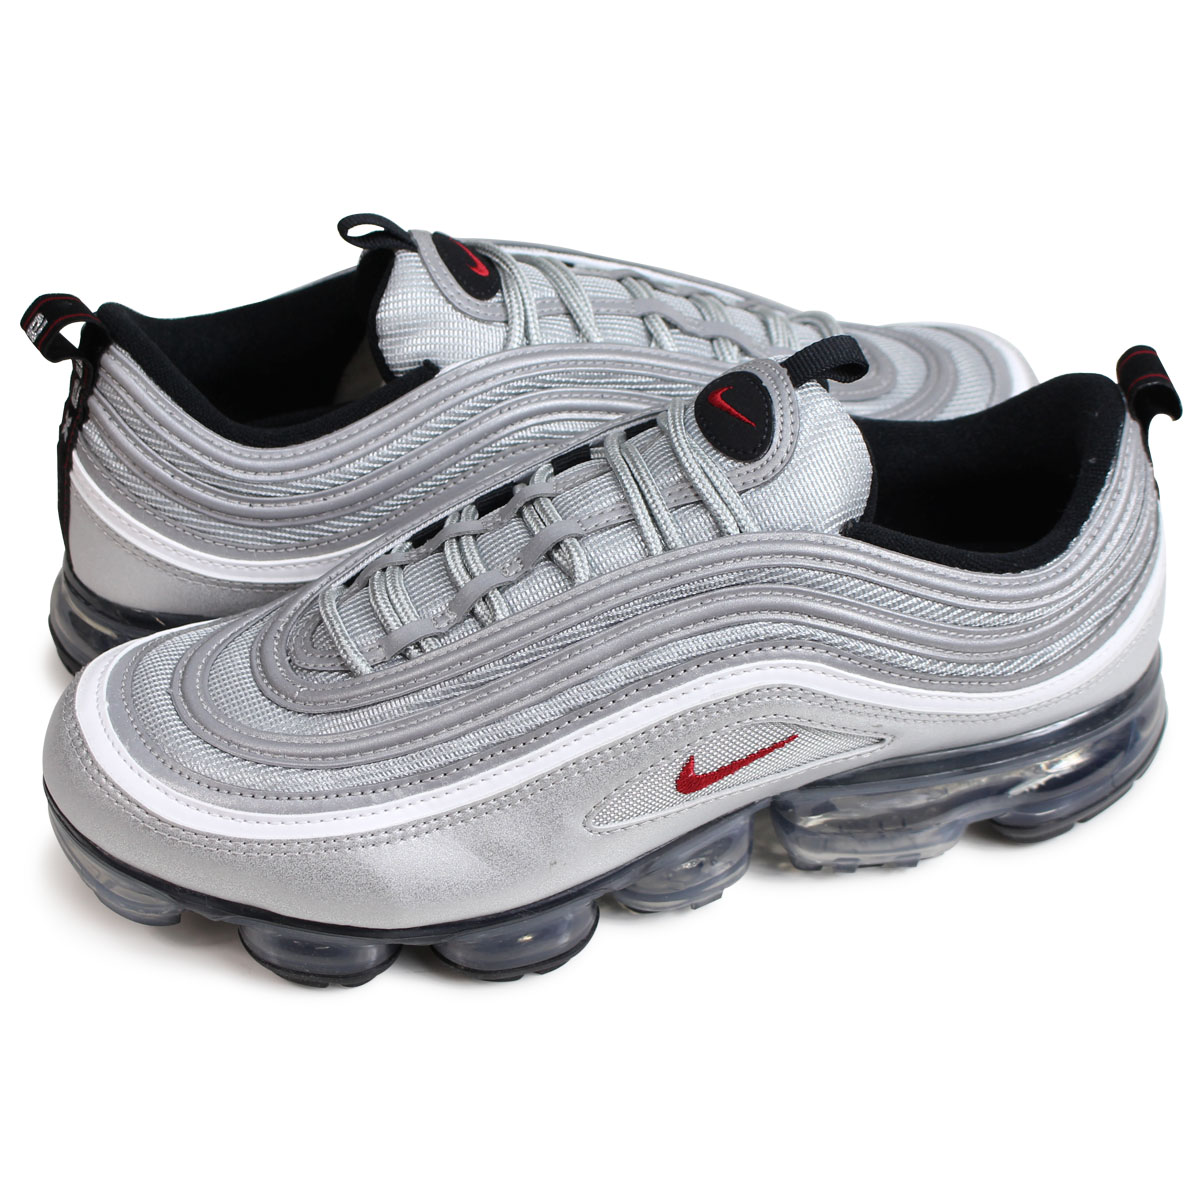 low priced 545a8 62640 NIKE AIR VAPORMAX 97 Nike air vapor max 97 sneakers men AJ7291-002 silver  [load planned Shinnyu load in reservation product 5/31 containing]